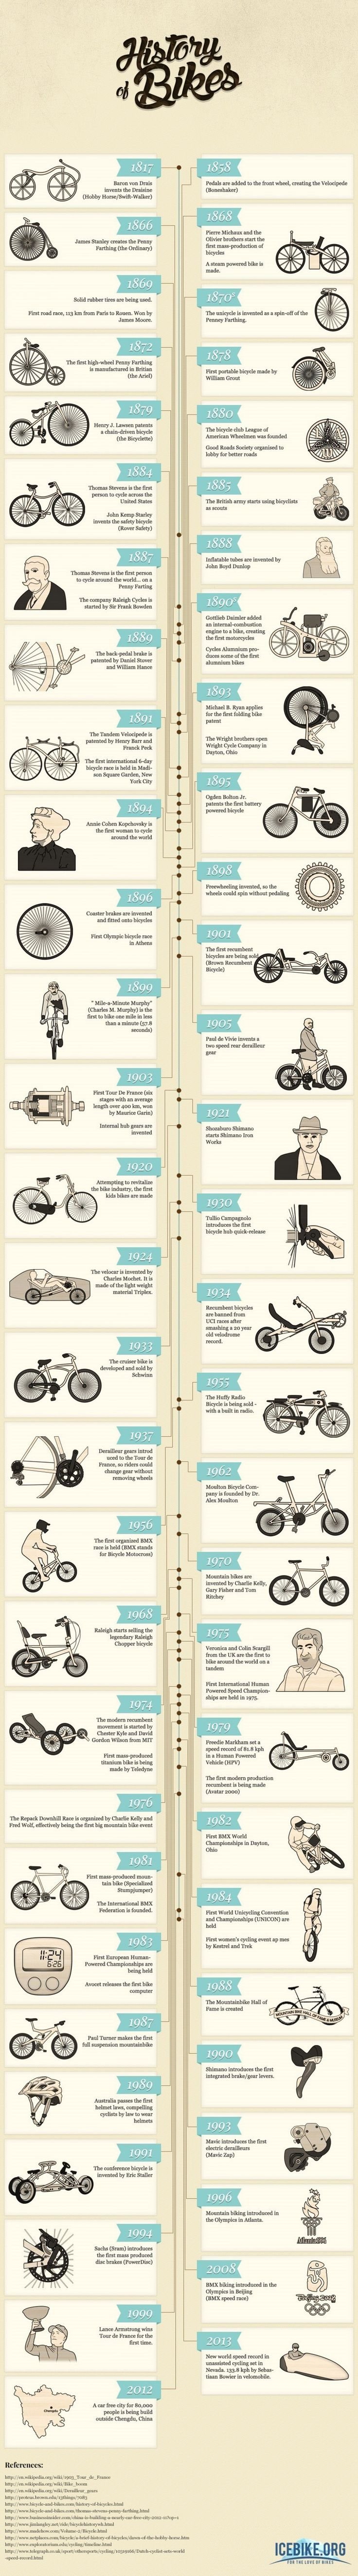 The History of Bikes Infographic.